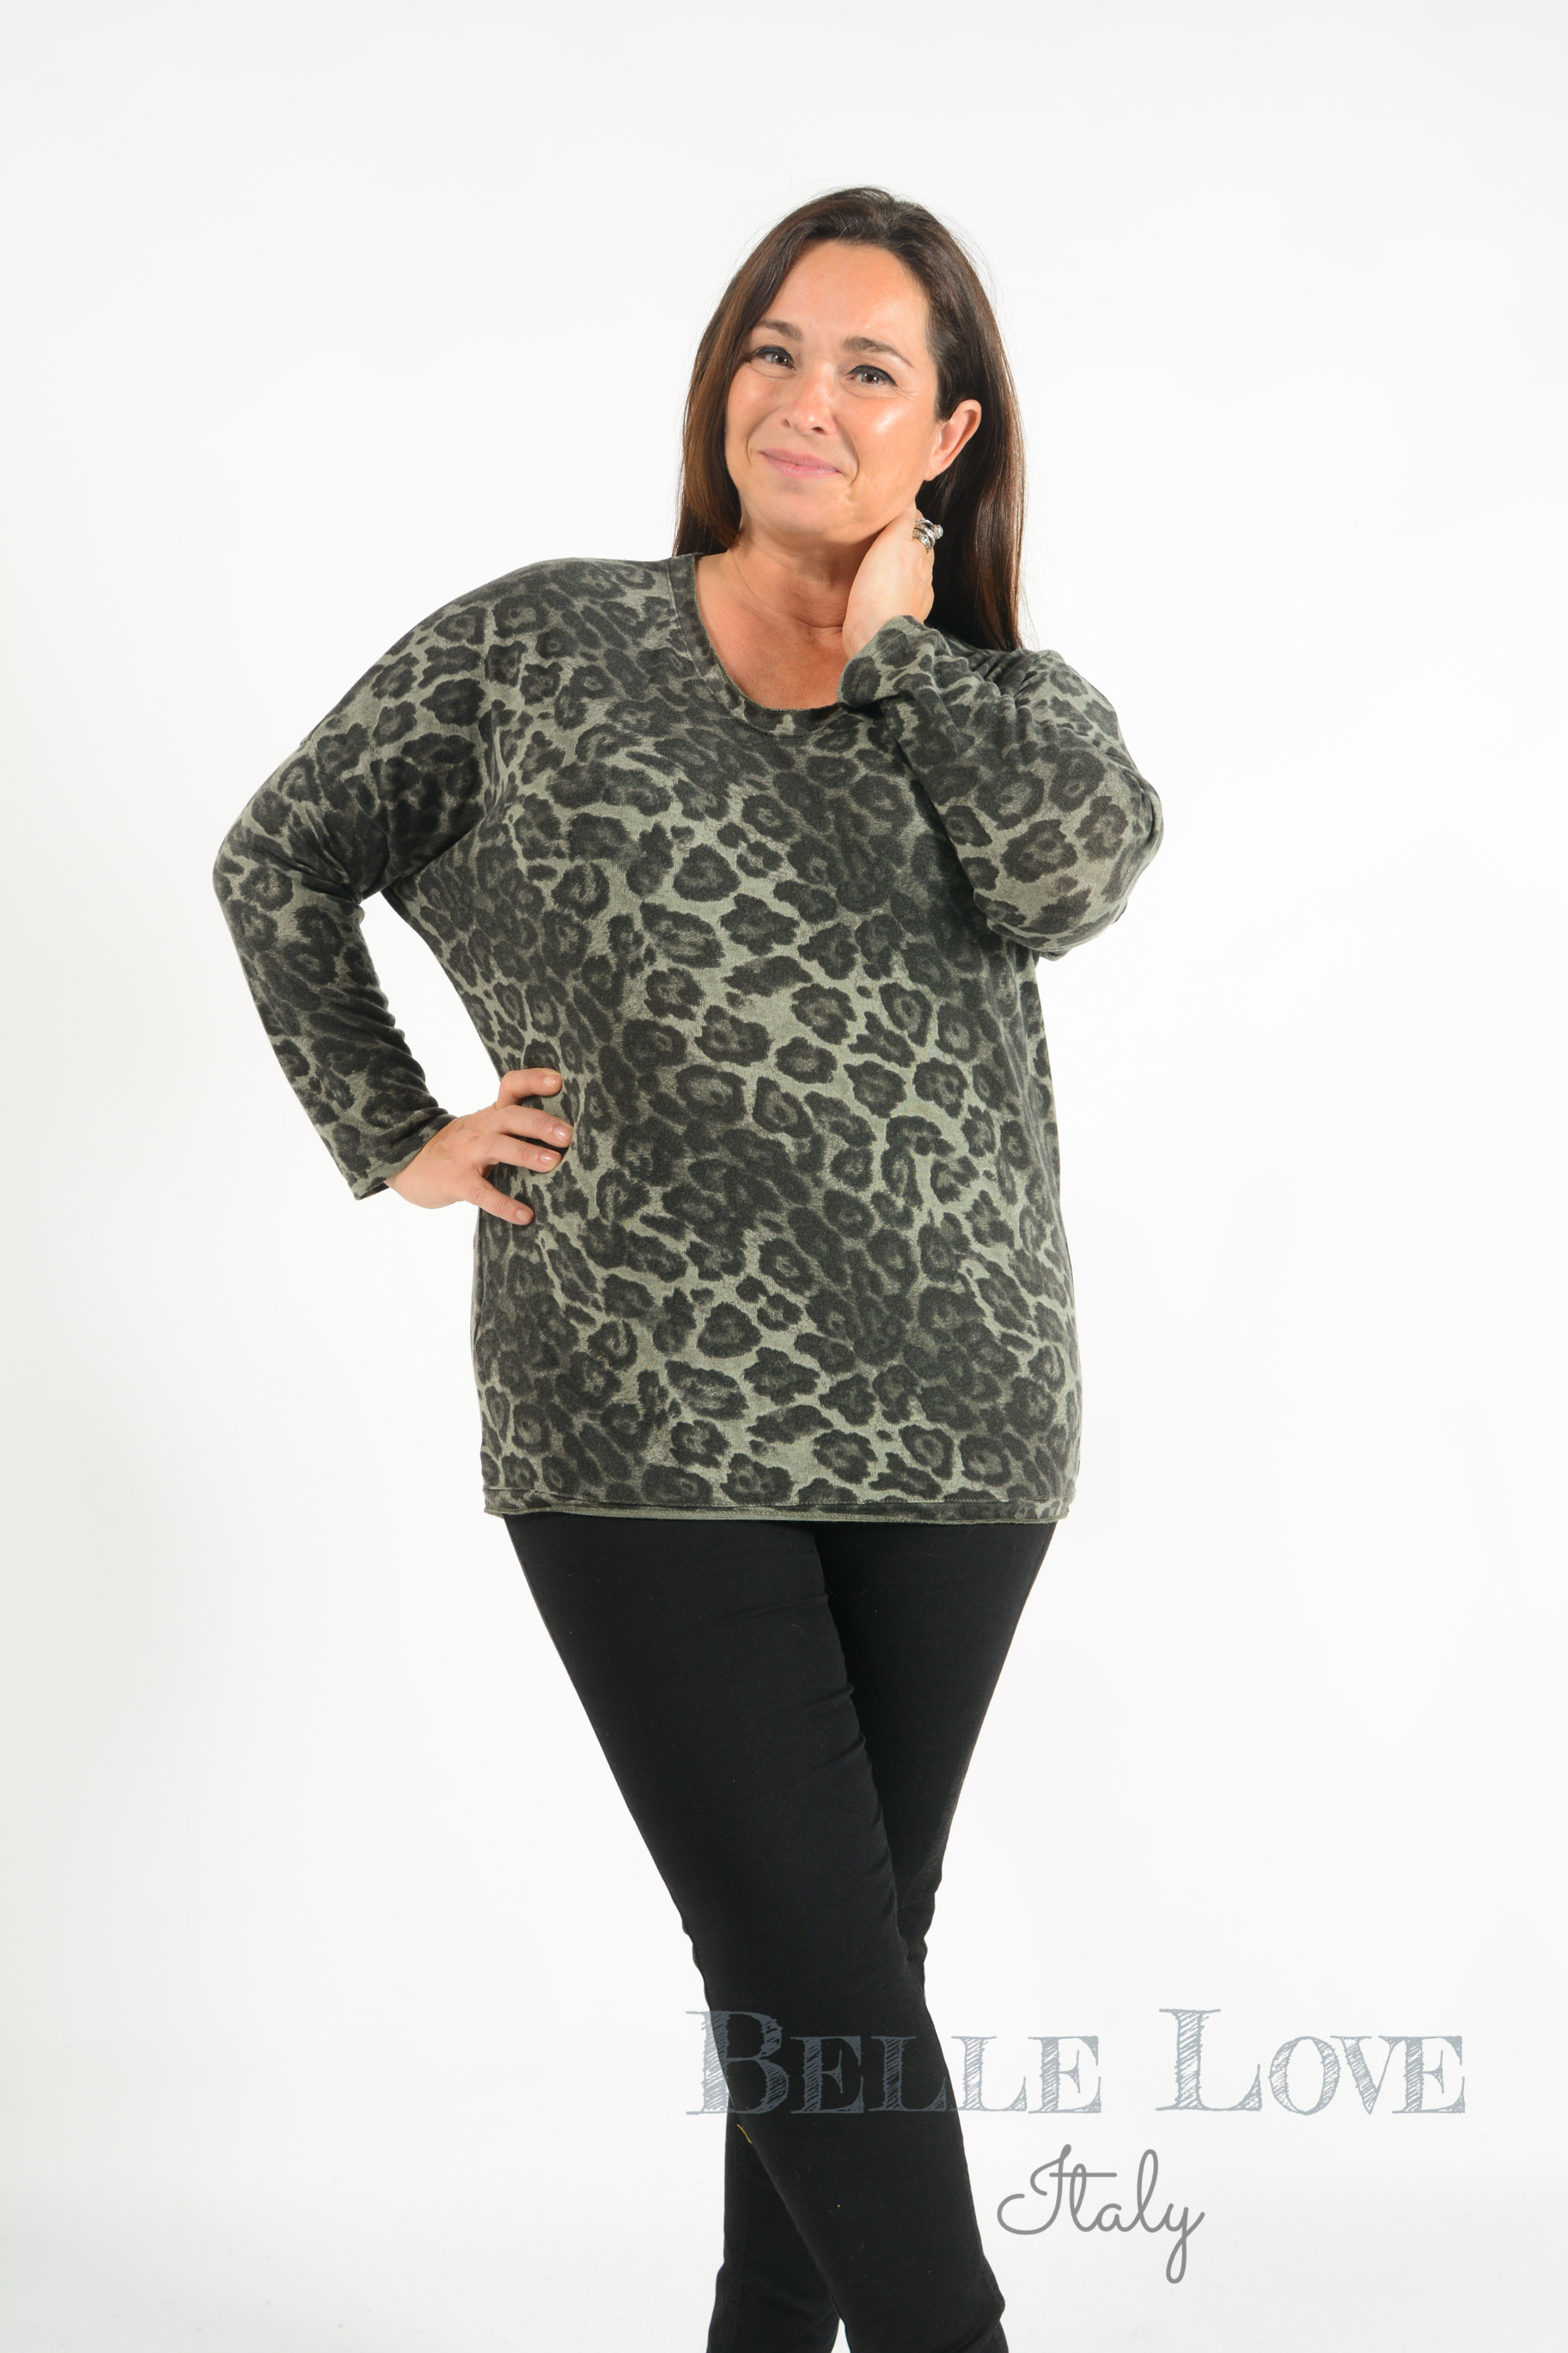 Belle Love Italy Isabella Leopard Print Top